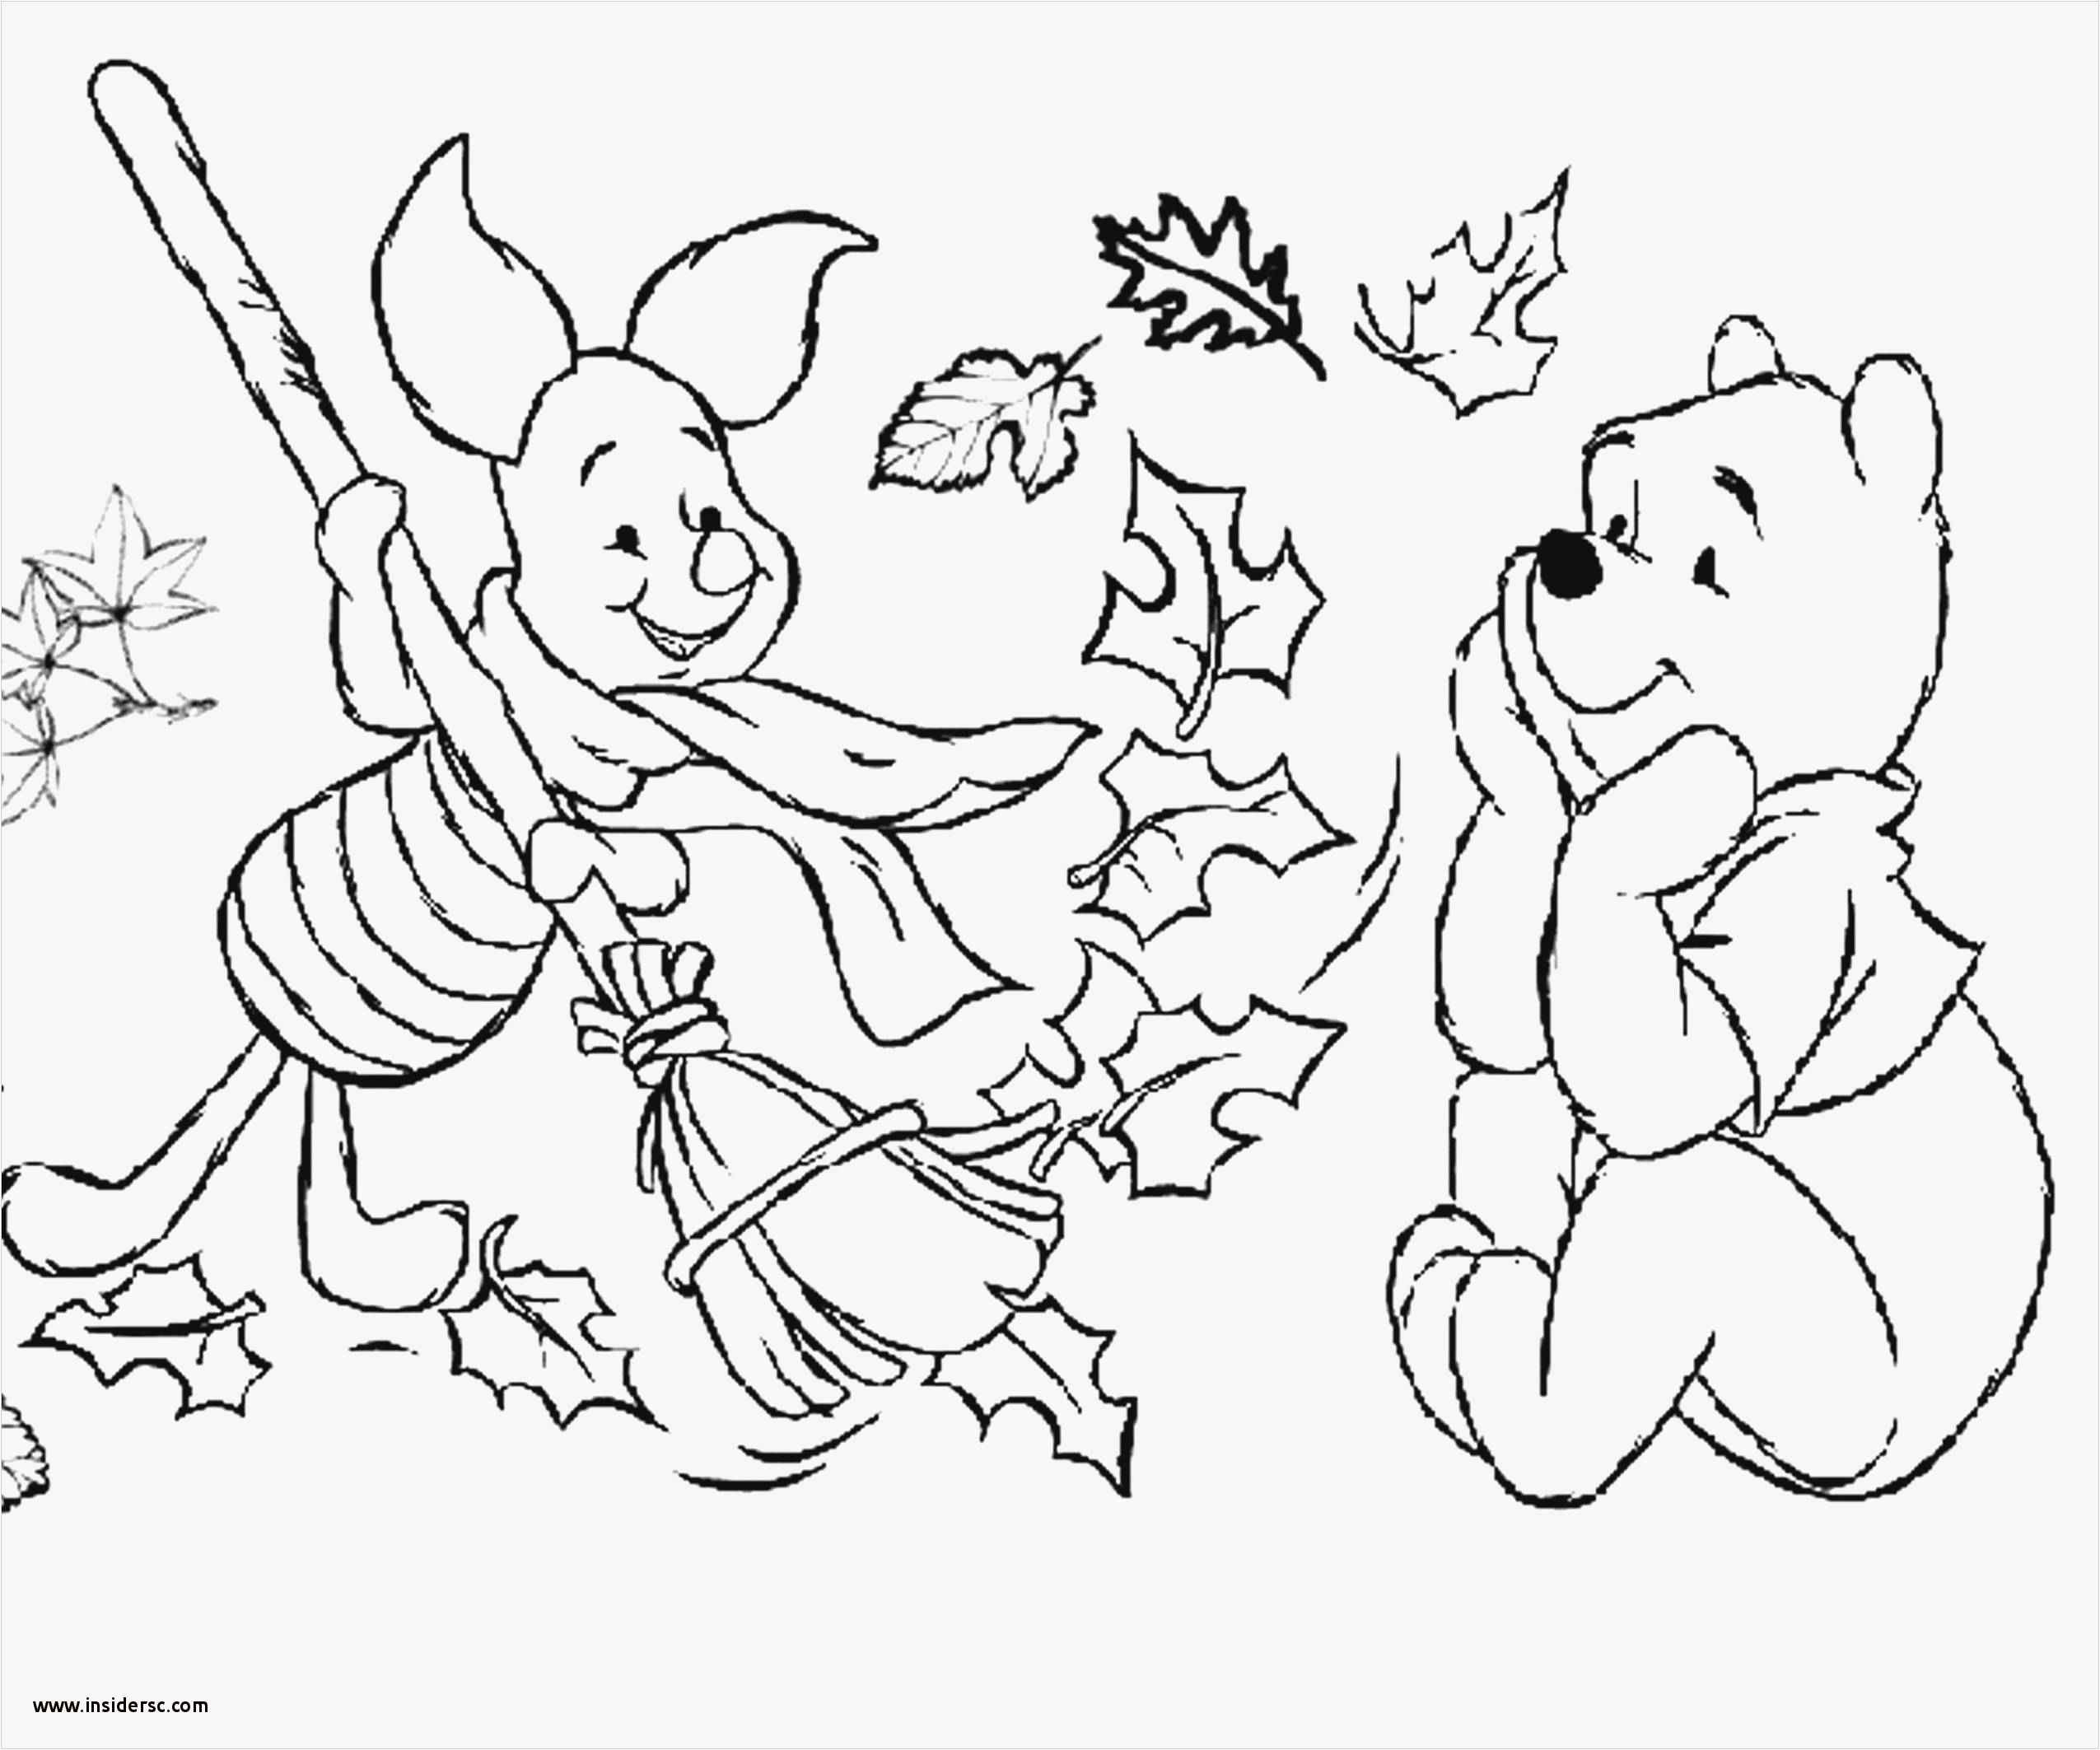 Pilgrim Coloring Pages Best Of Thanksgiving Pilgrim Coloring Pages Qulu